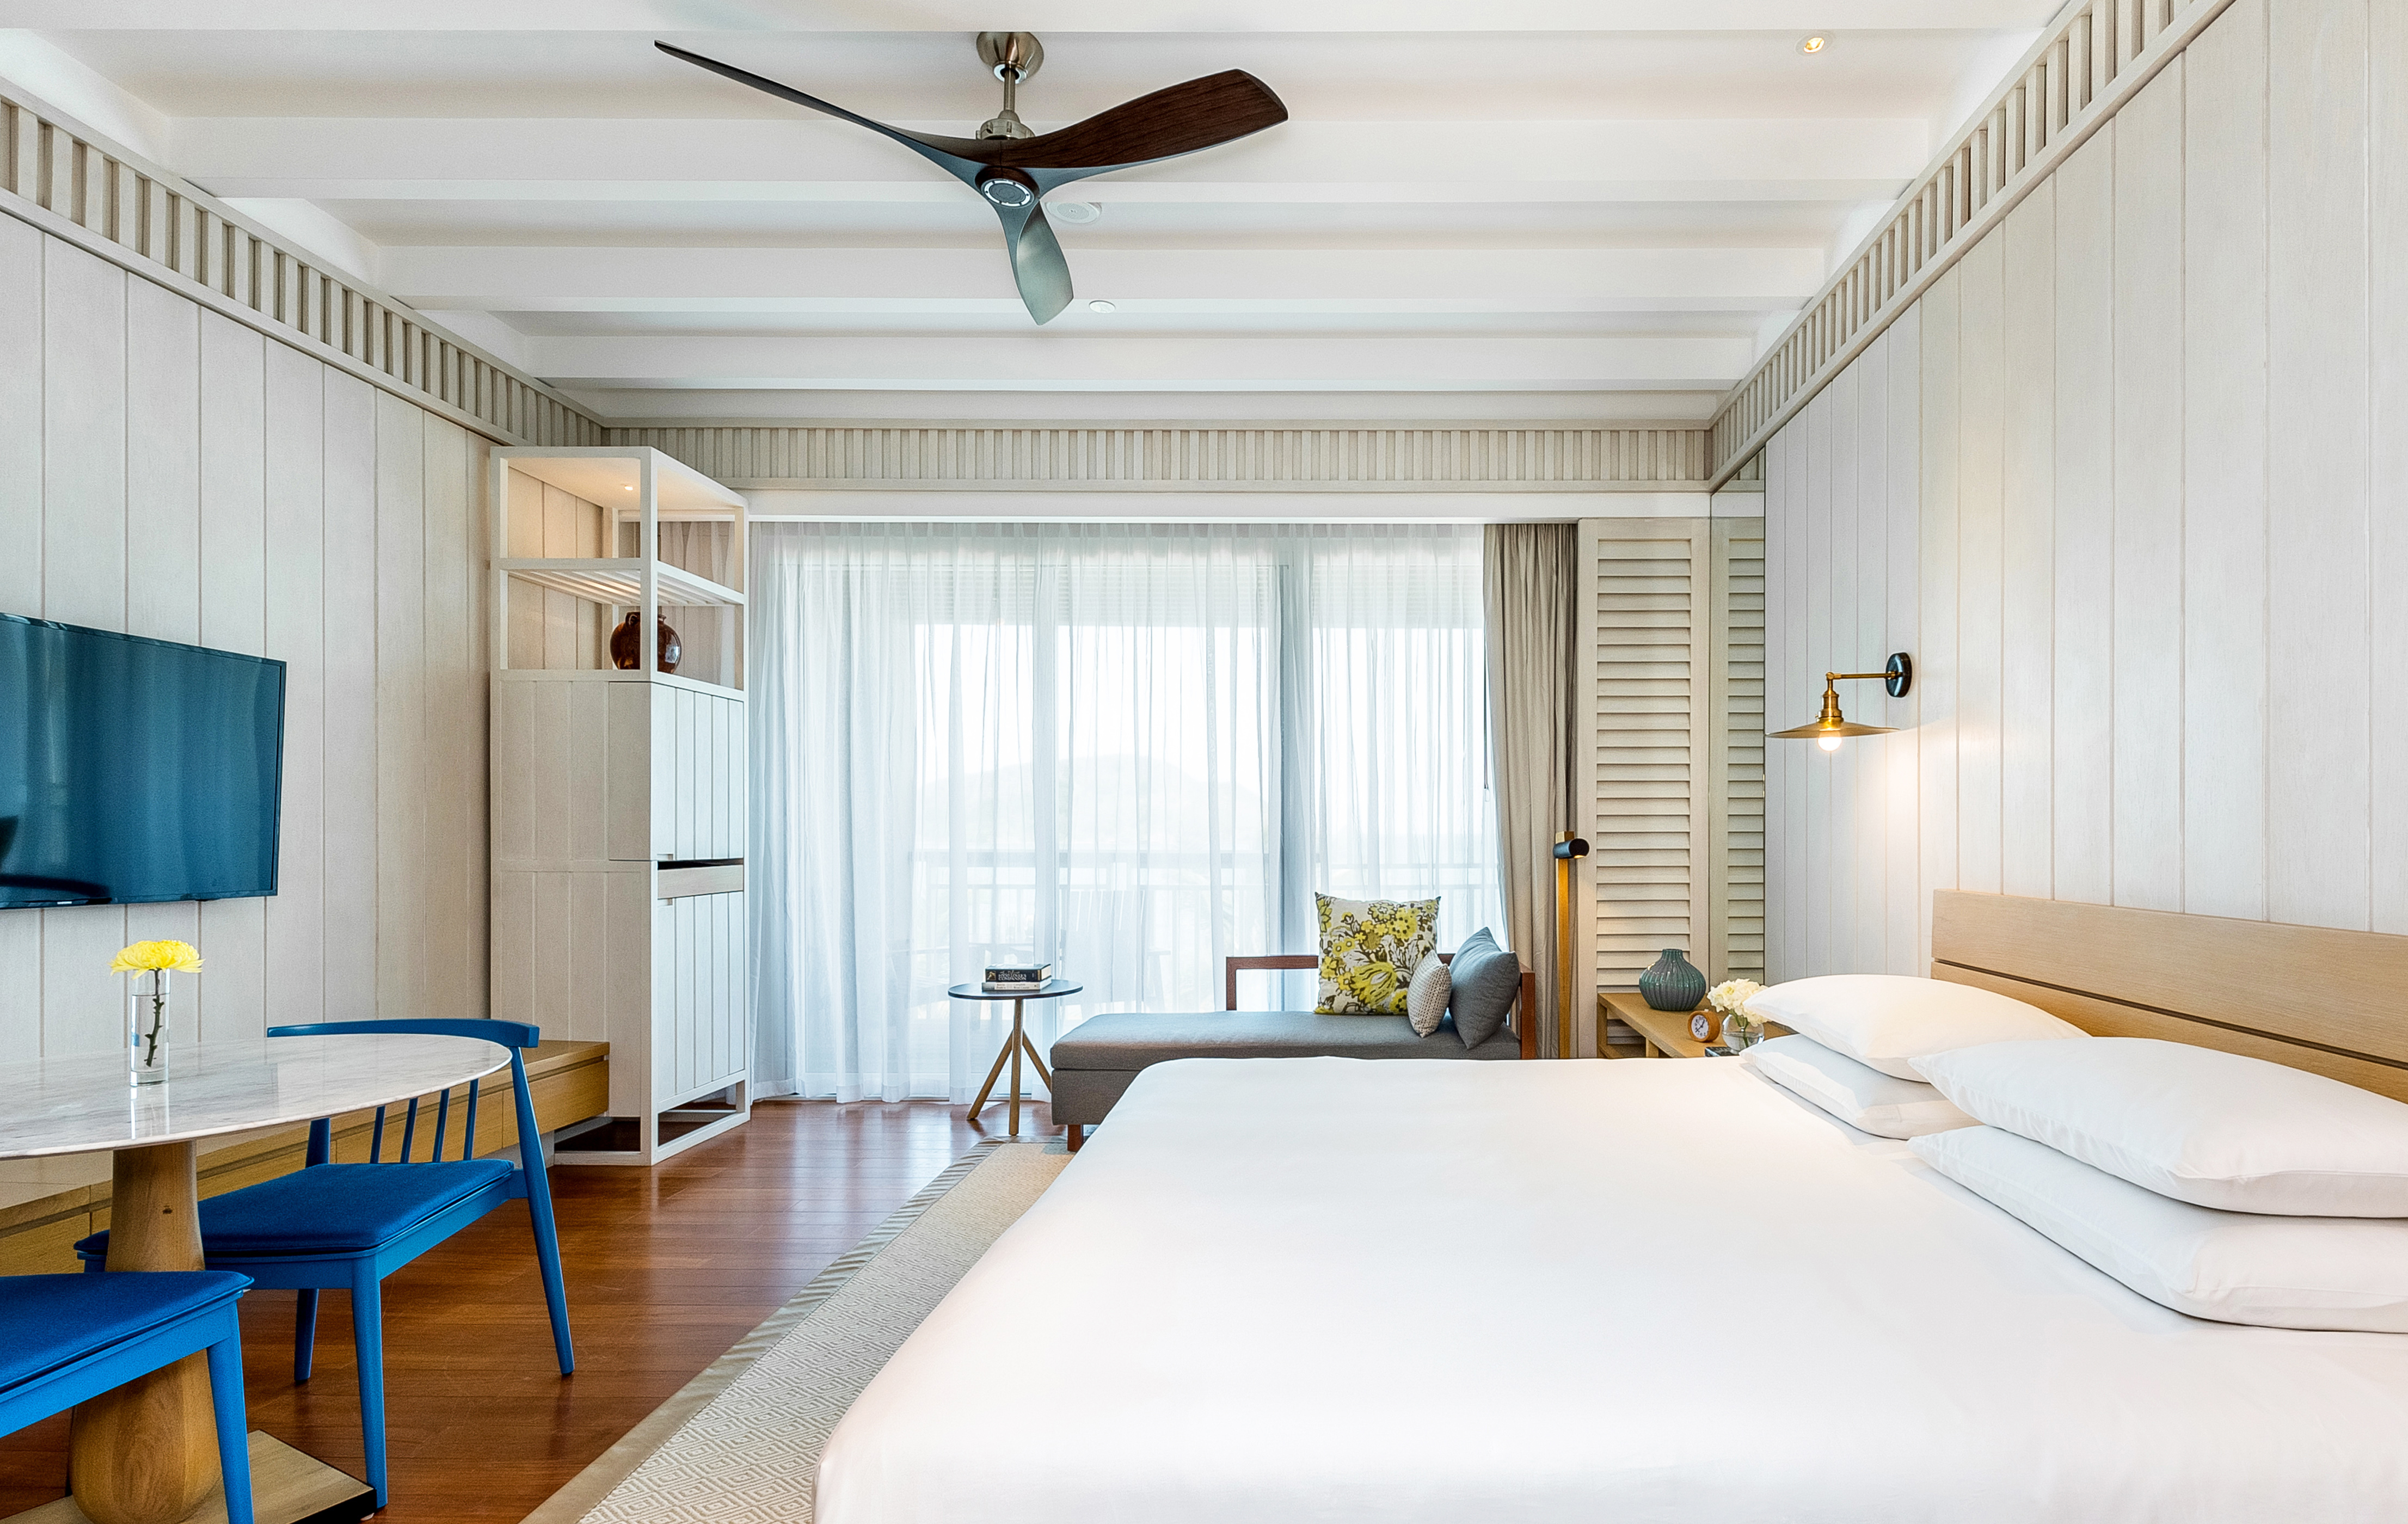 The Park Hyatt Brand Makes Its Caribbean Debut with St. Kitts Opening |  Business Wire